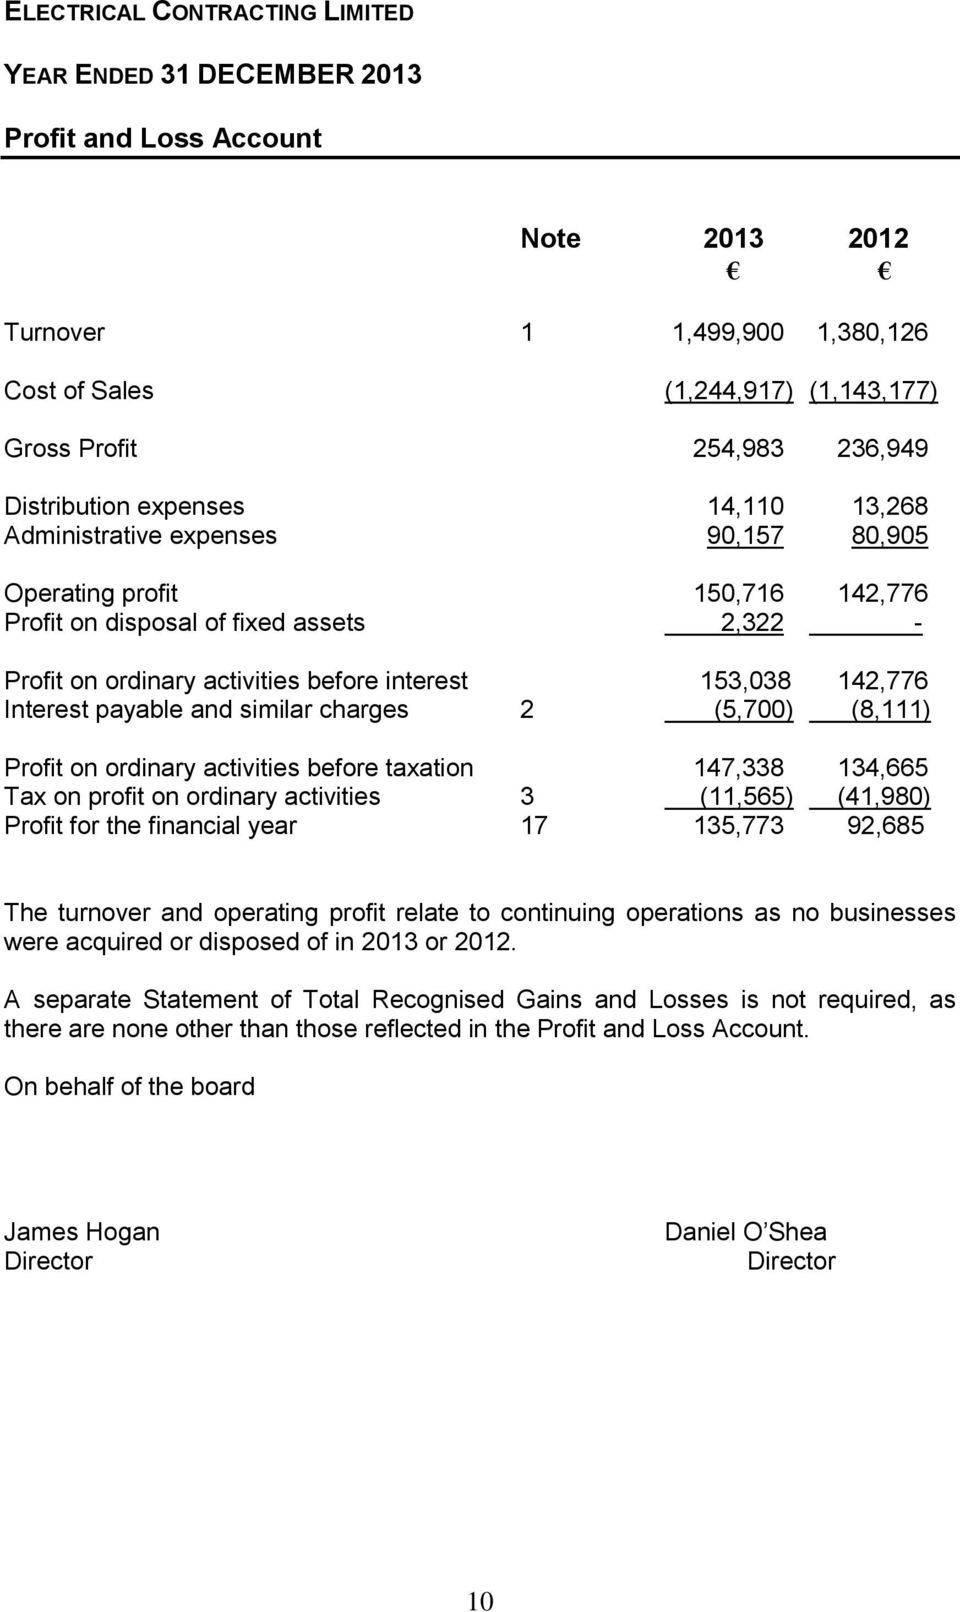 similar charges 2 (5,700) (8,111) Profit on ordinary activities before taxation 147,338 134,665 Tax on profit on ordinary activities 3 (11,565) (41,980) Profit for the financial year 17 135,773